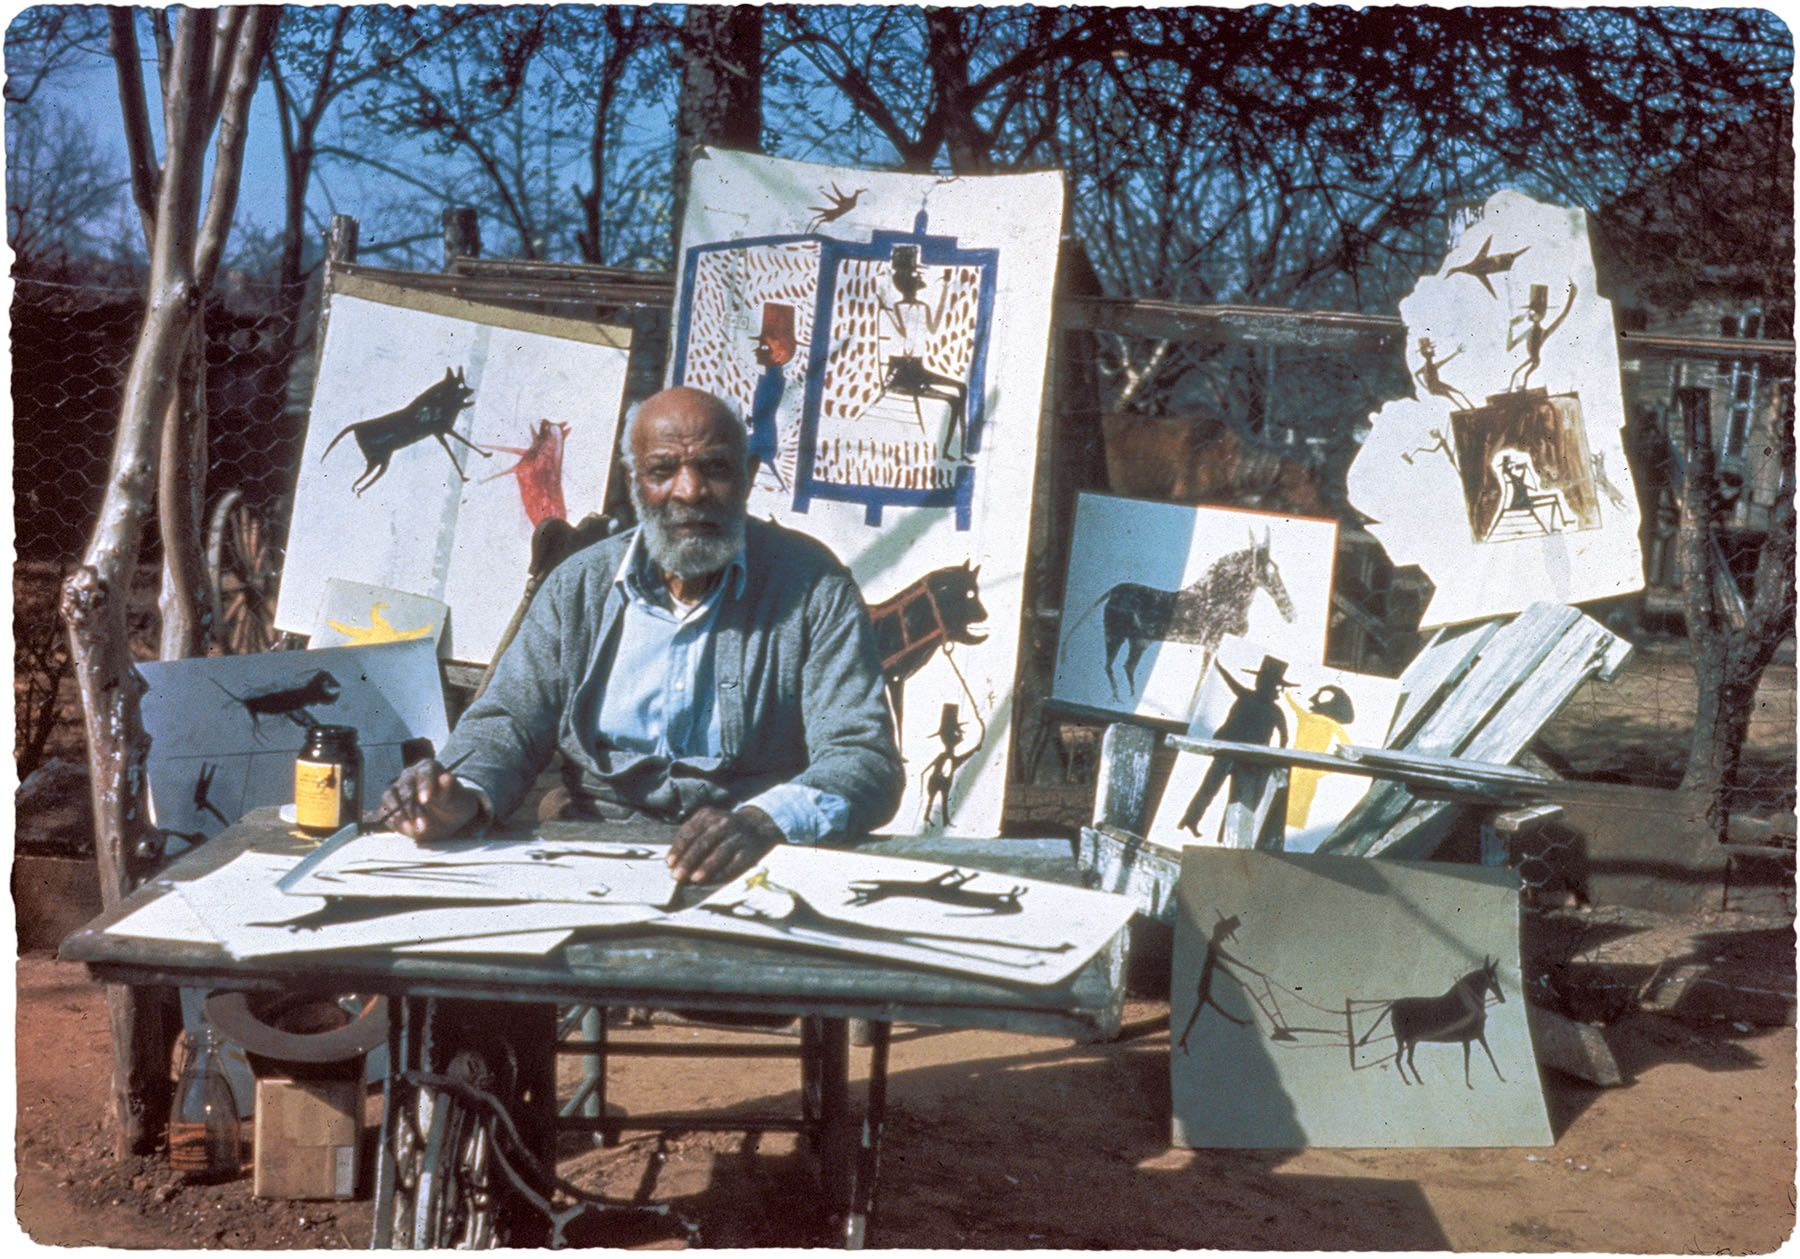 Image of Bill Traylor